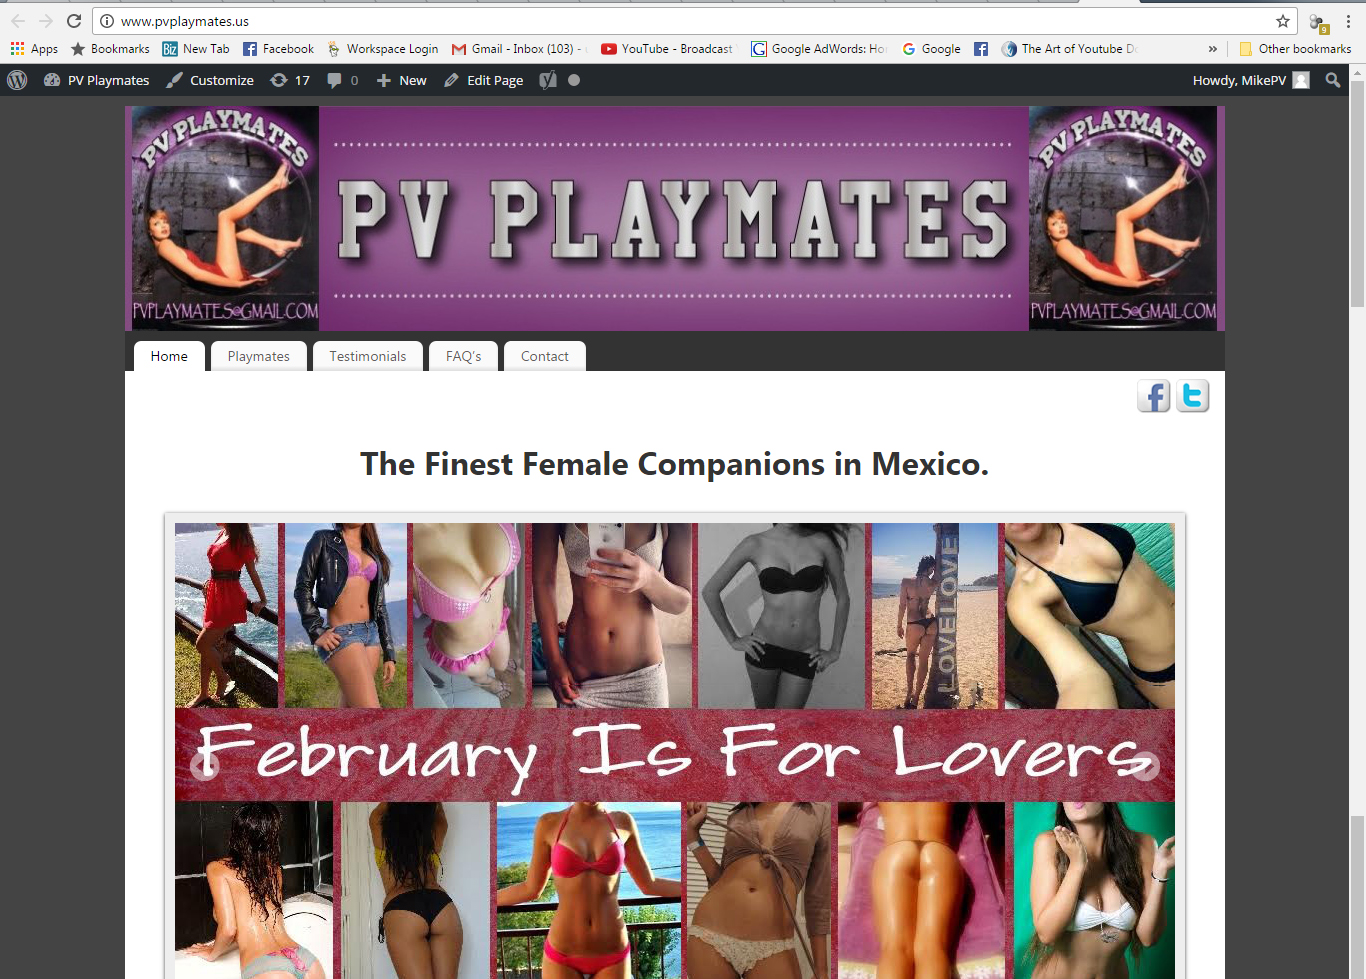 PV Playmates Website Design